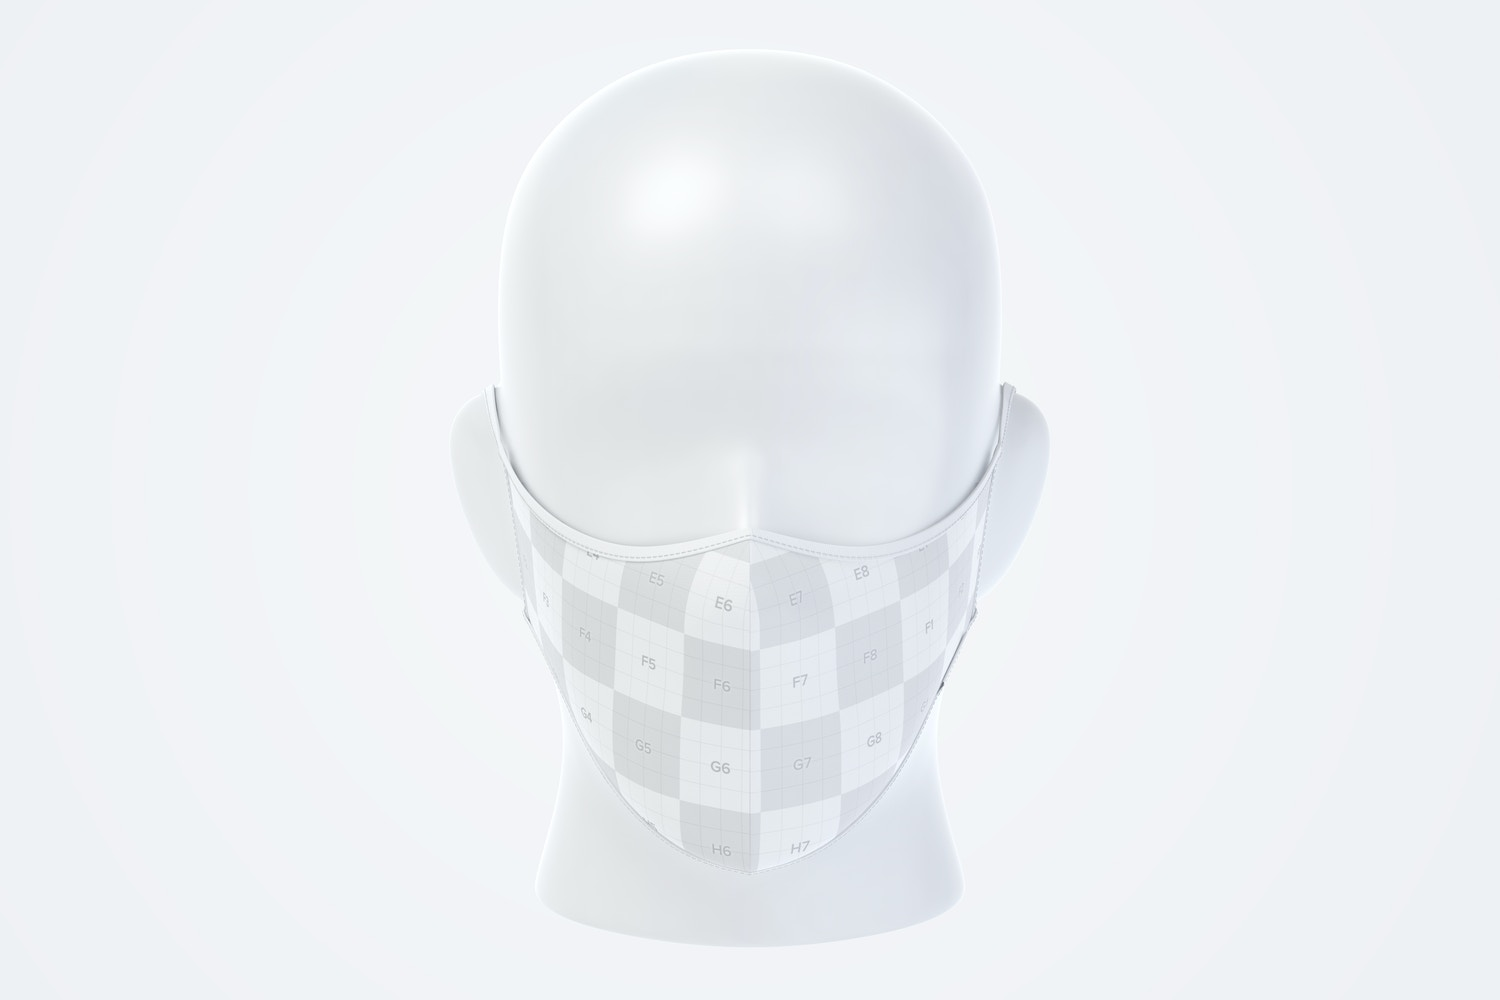 Face Mask Mockup, Front View